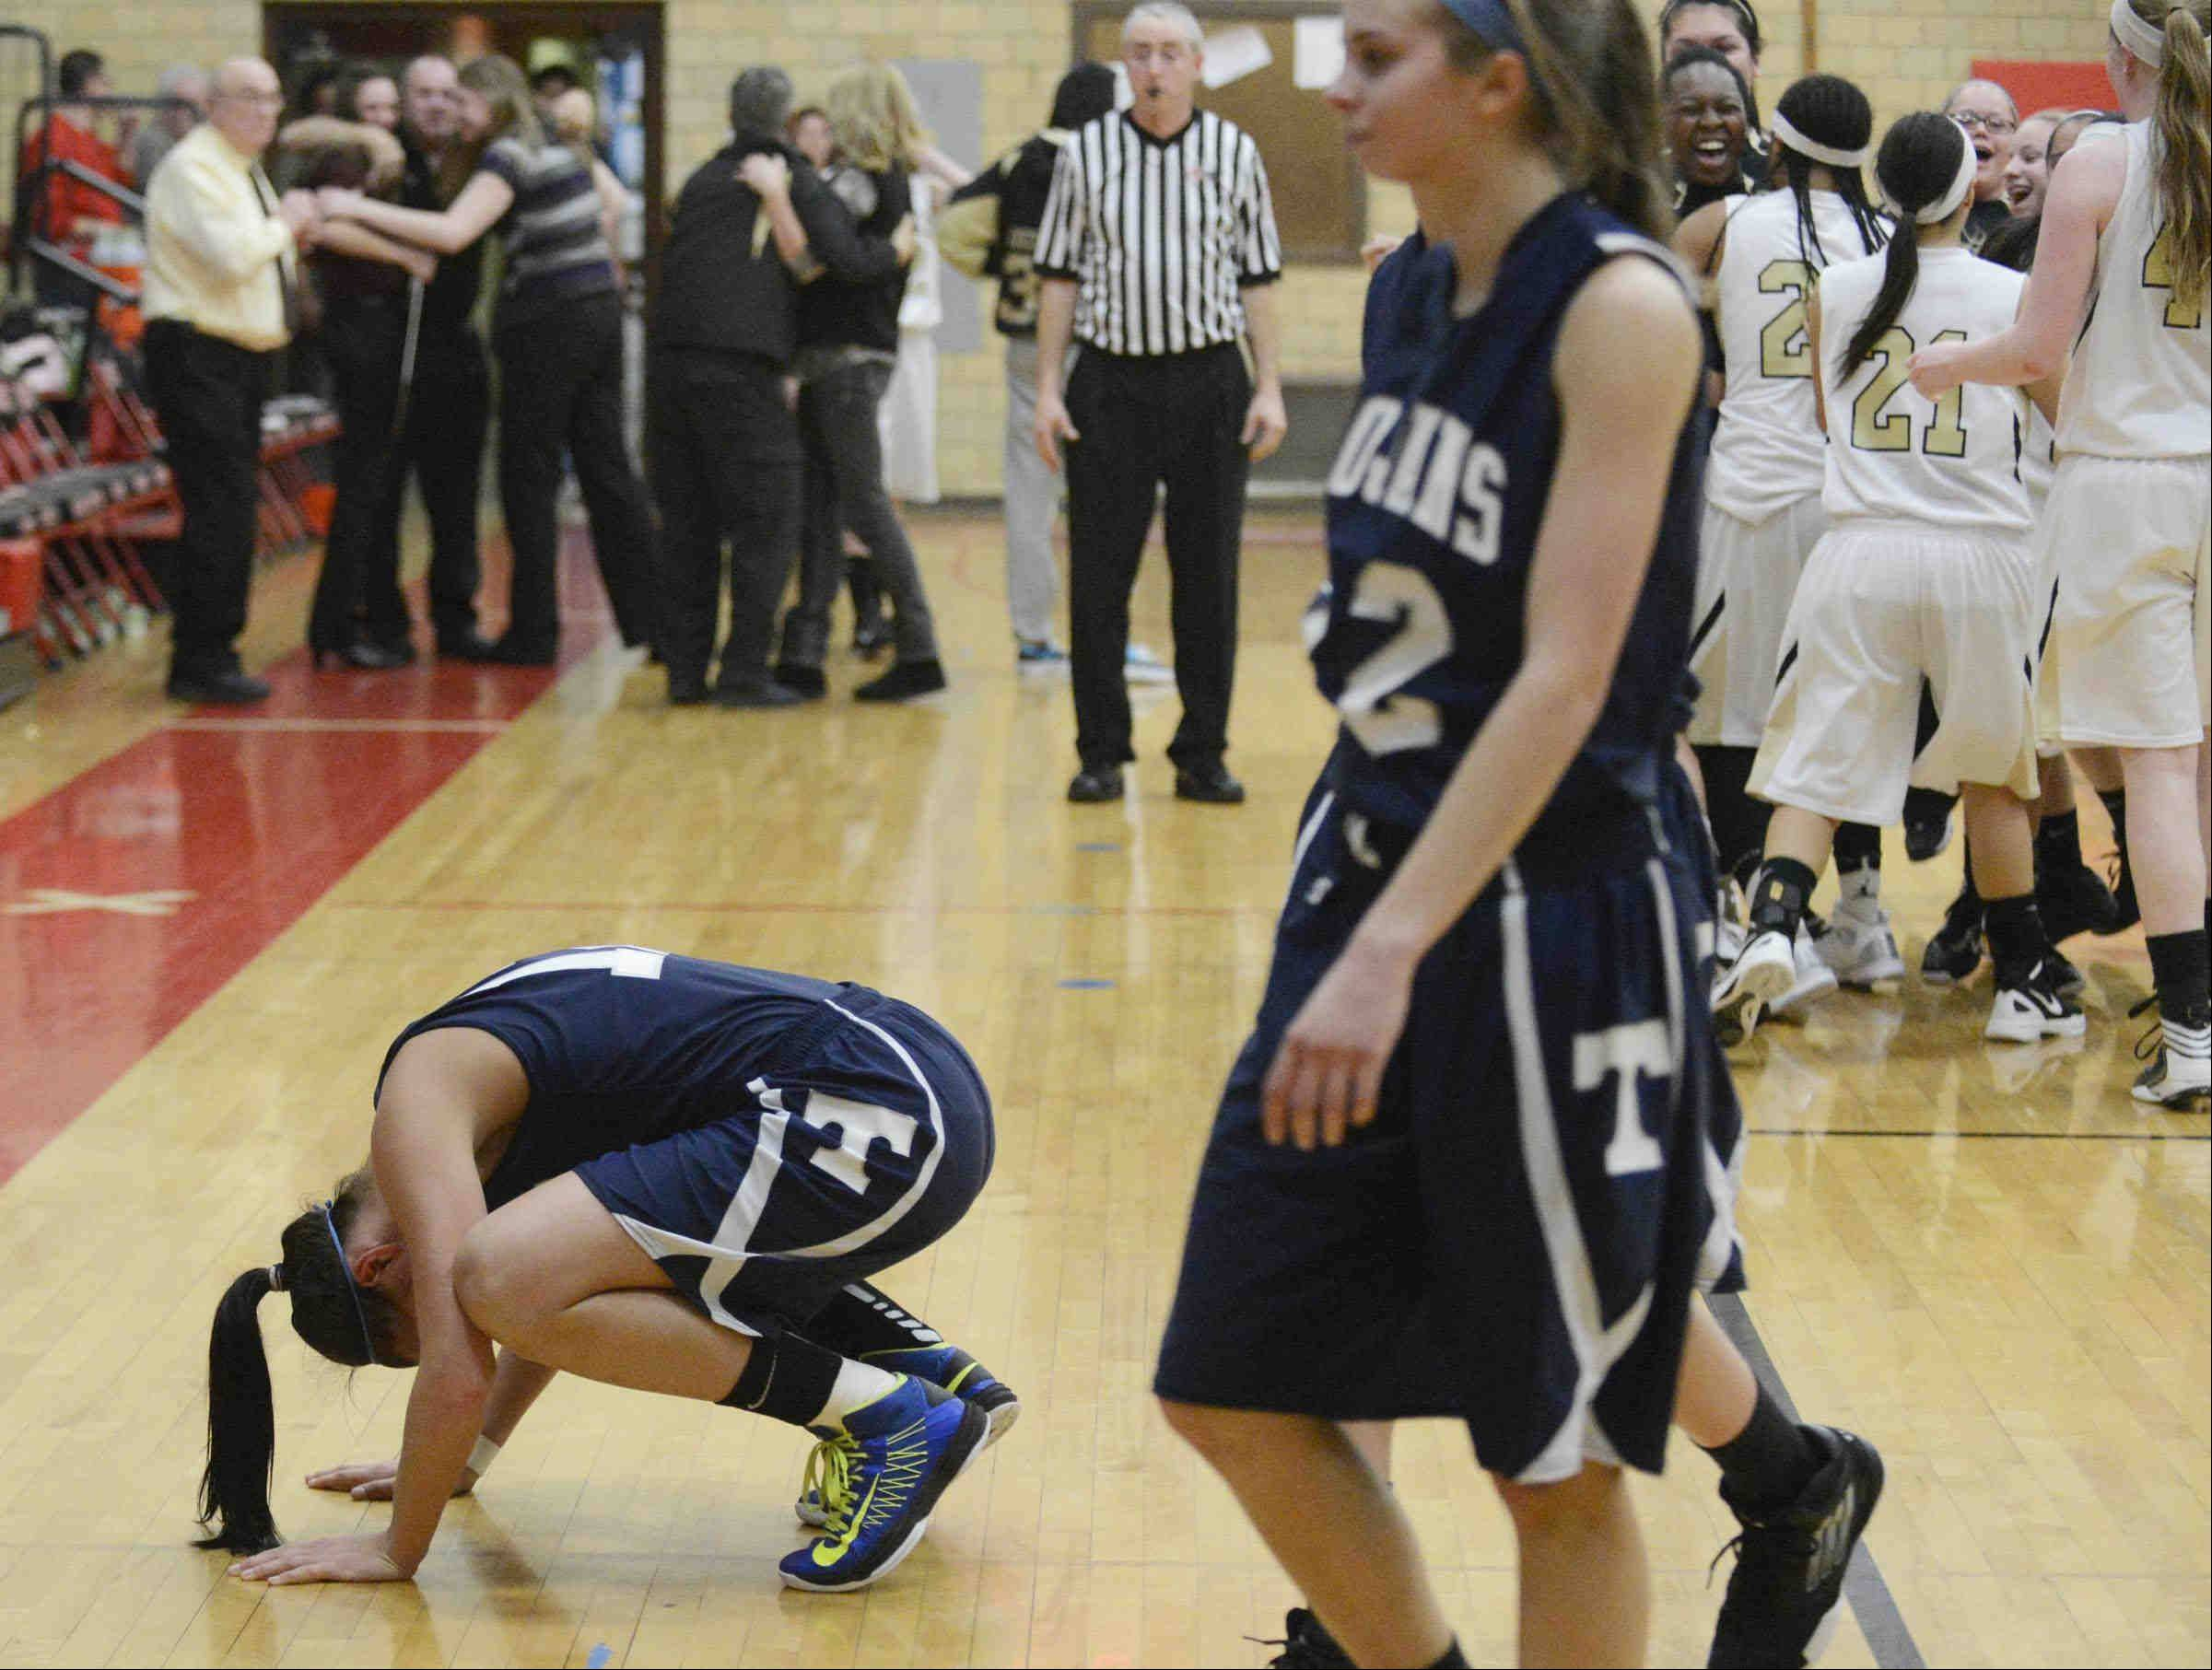 Cary-Grove's Joslyn Nicholson falls to the floor at the end of the Trojans' loss to Streamwood Monday in the Class 4A sectional game in Rockford.